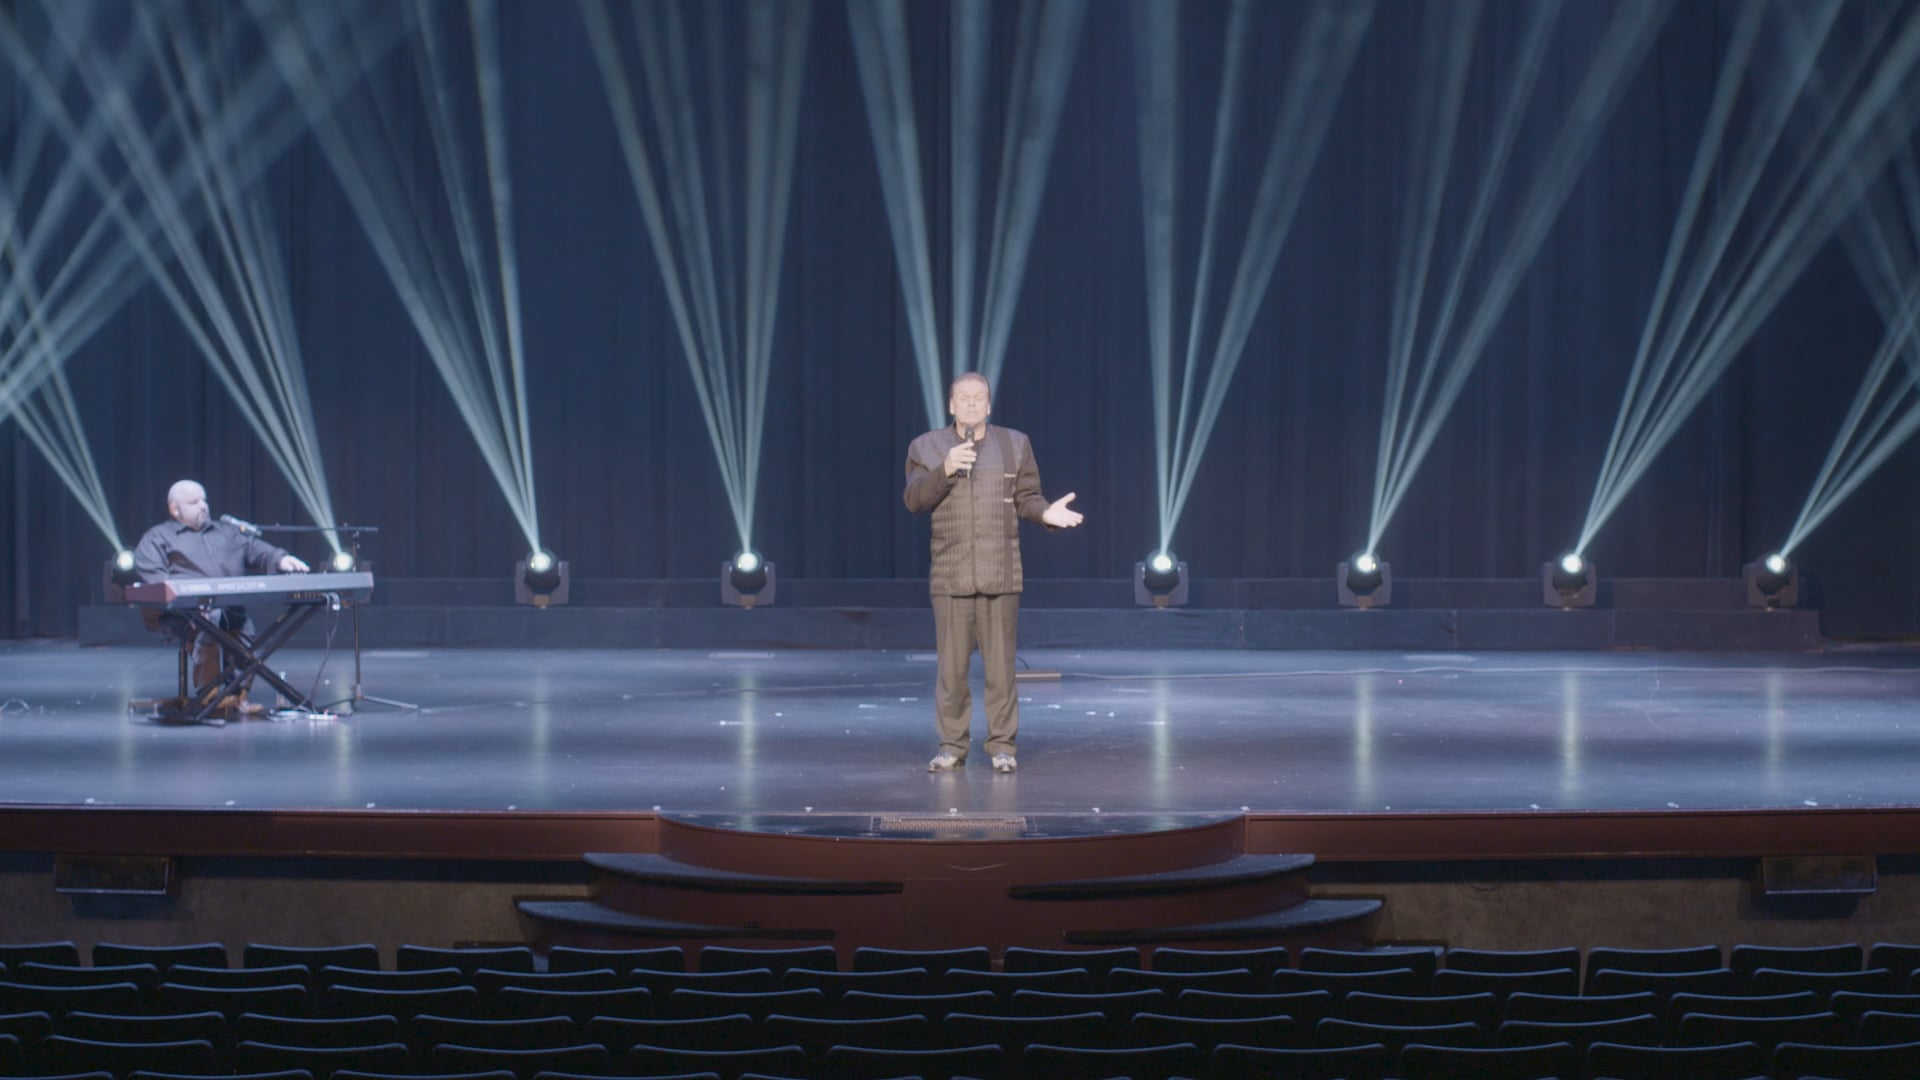 """Full Cut of """"Ethan Tate's Branson, Missouri"""" Filmed in January 2019, performances took place inside the Mickey Gilley Theater in Branson, Missouri, and was screened at ArtCenter on 10 December, 2019."""